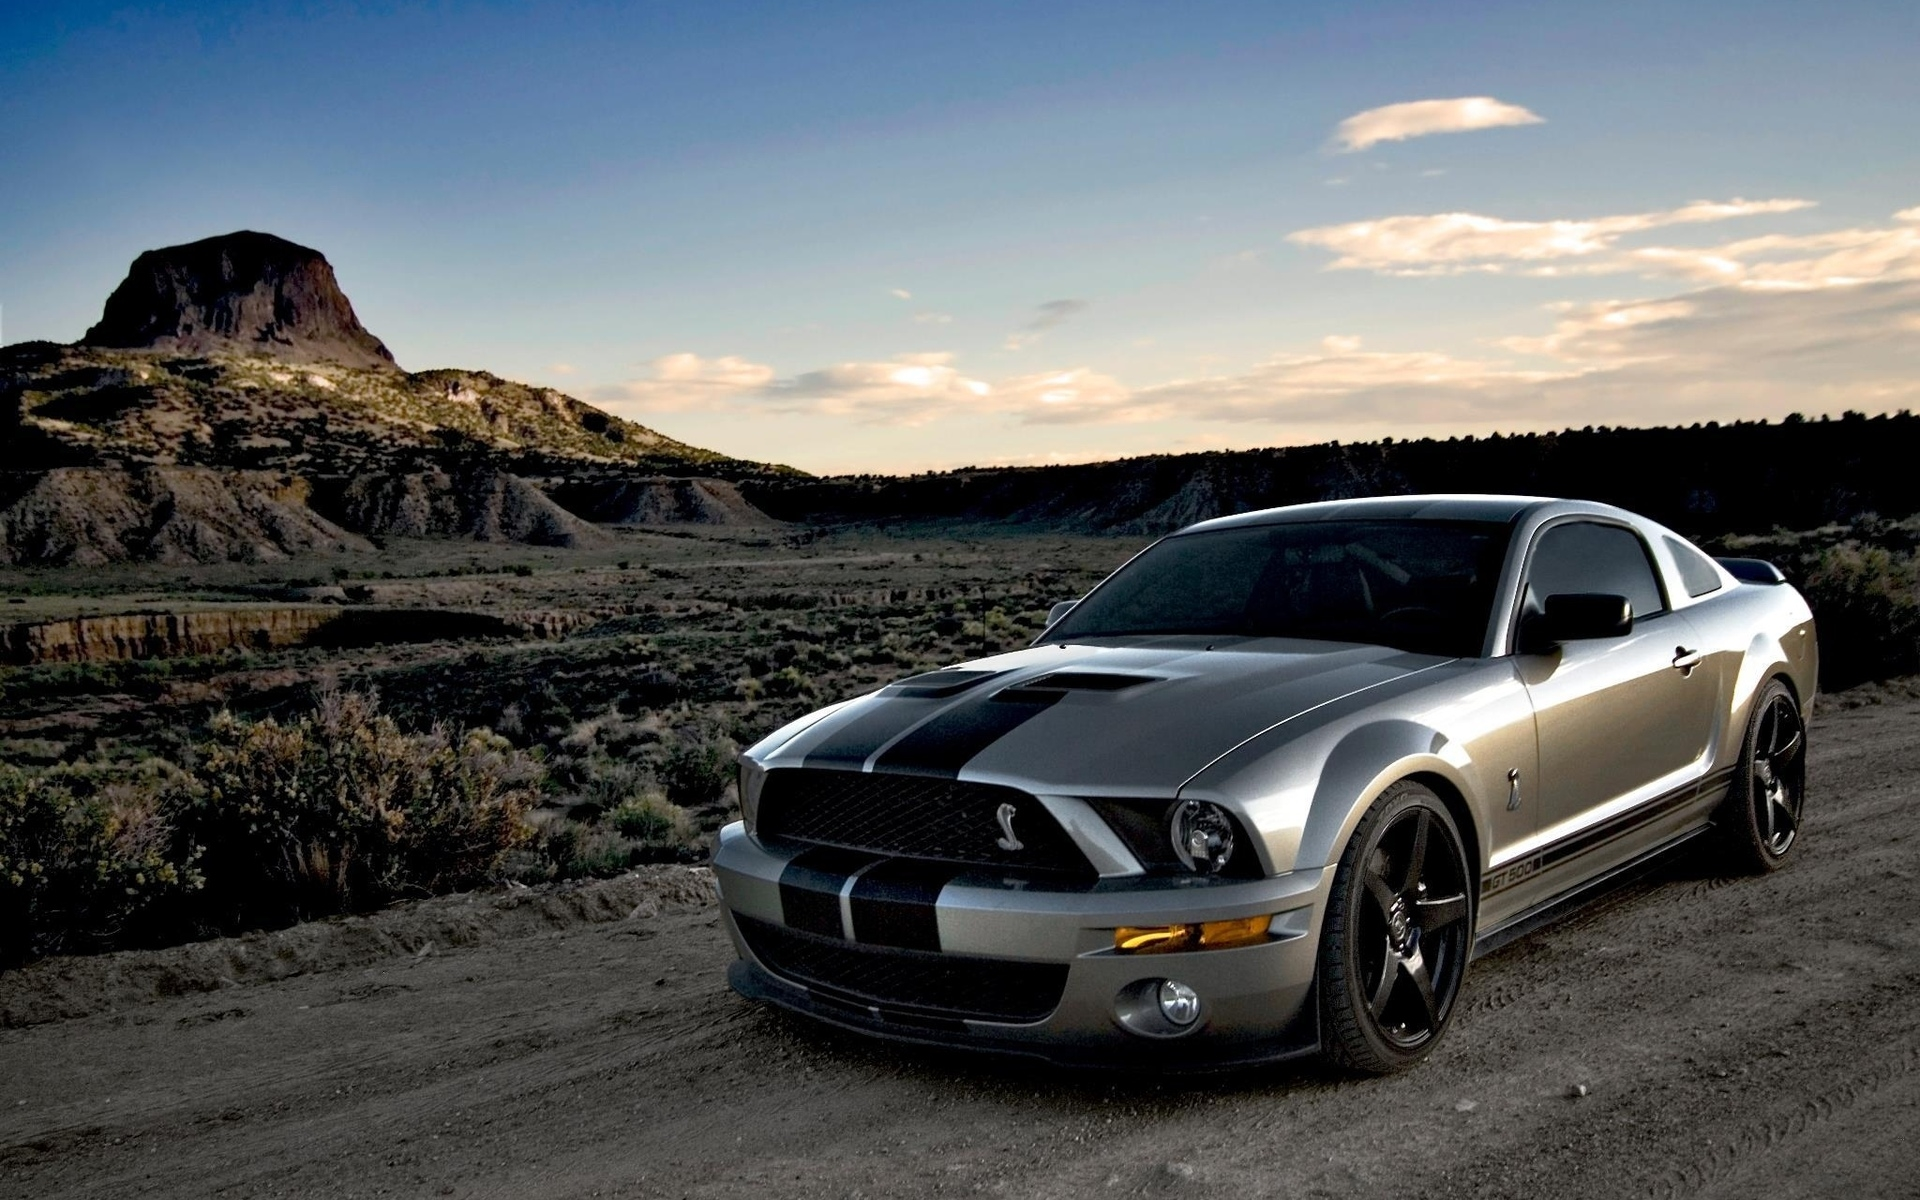 2014 Shelby Gt500 Mustang Desktop Background Screensaver Apps 1920x1200